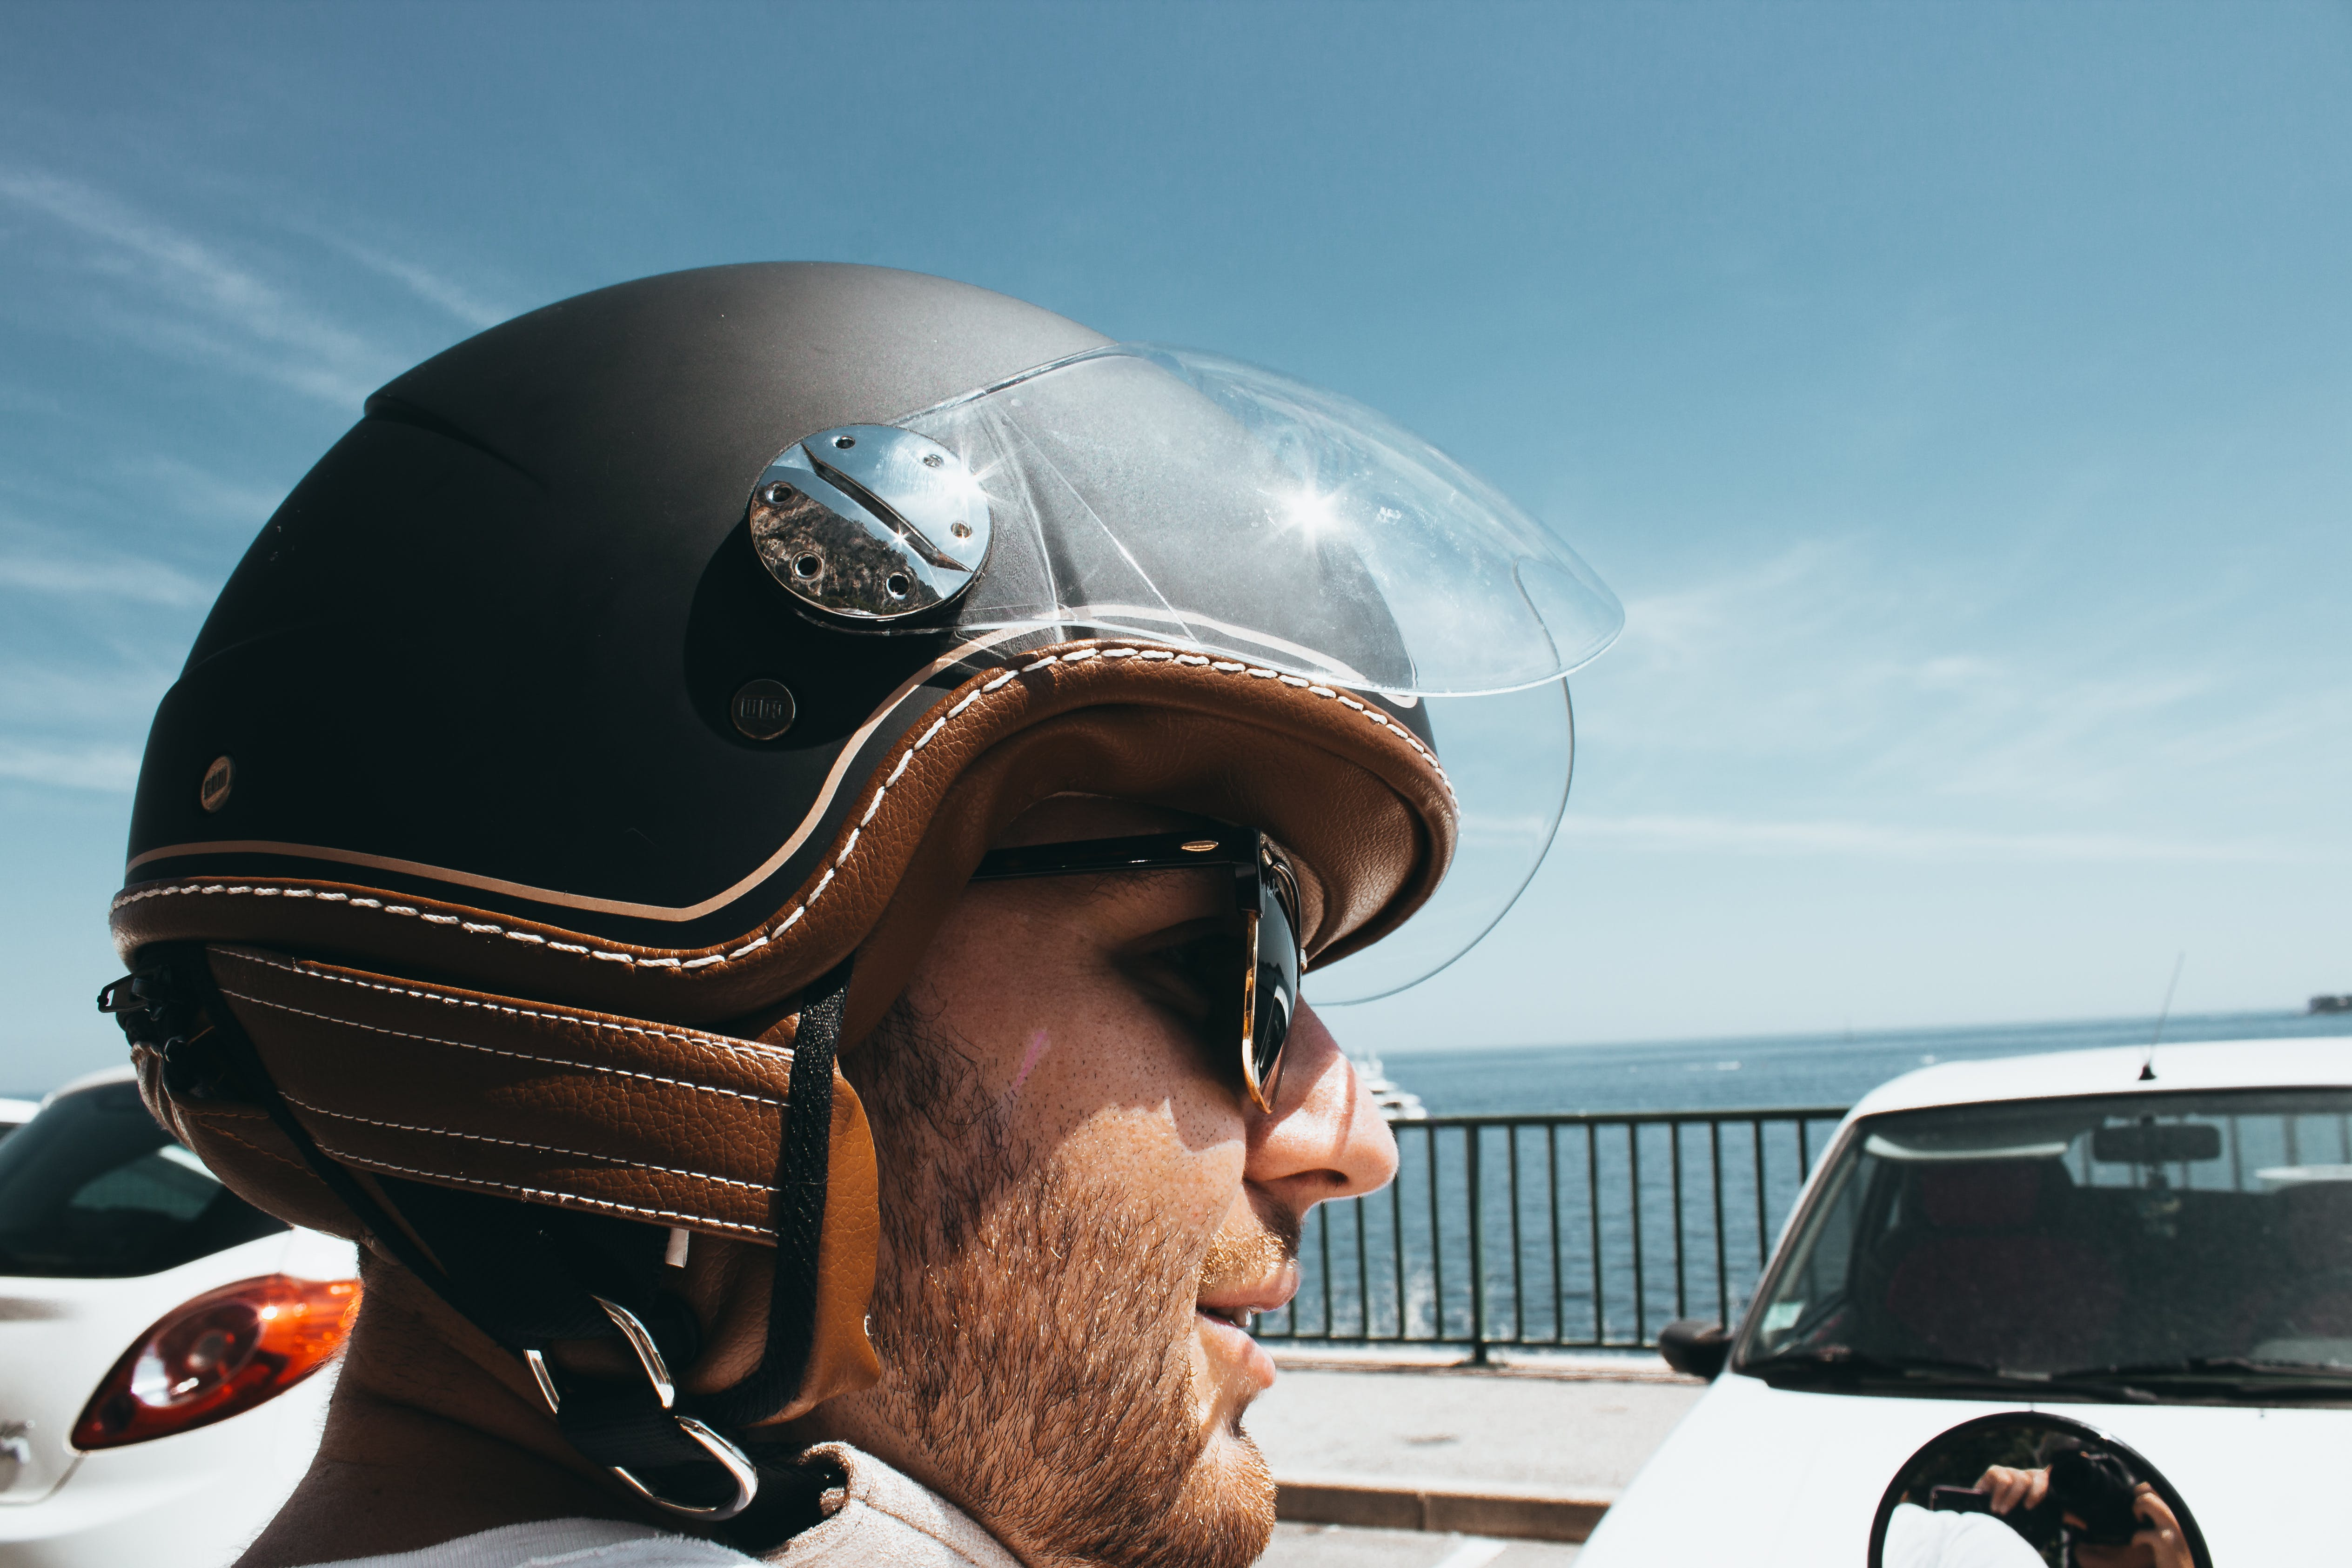 Man Wearing Black-and-brown Half-face Helmet and Black Sunglasses